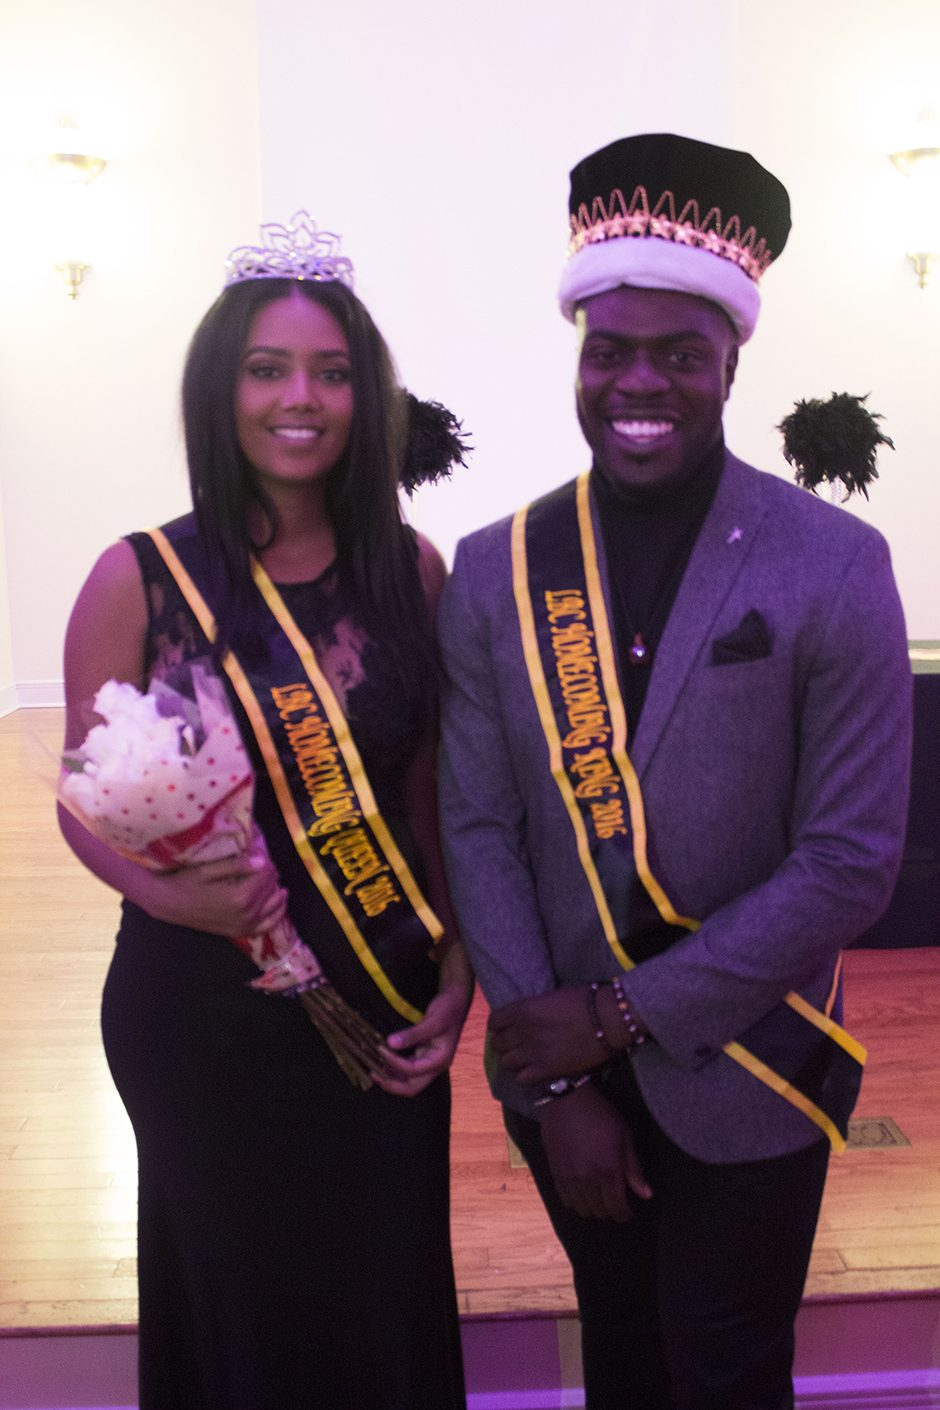 Seniors Maza Wole and Okey Ukaga are crowned this year's LBC Homecoming King and Queen. Photo by Ymani Wince